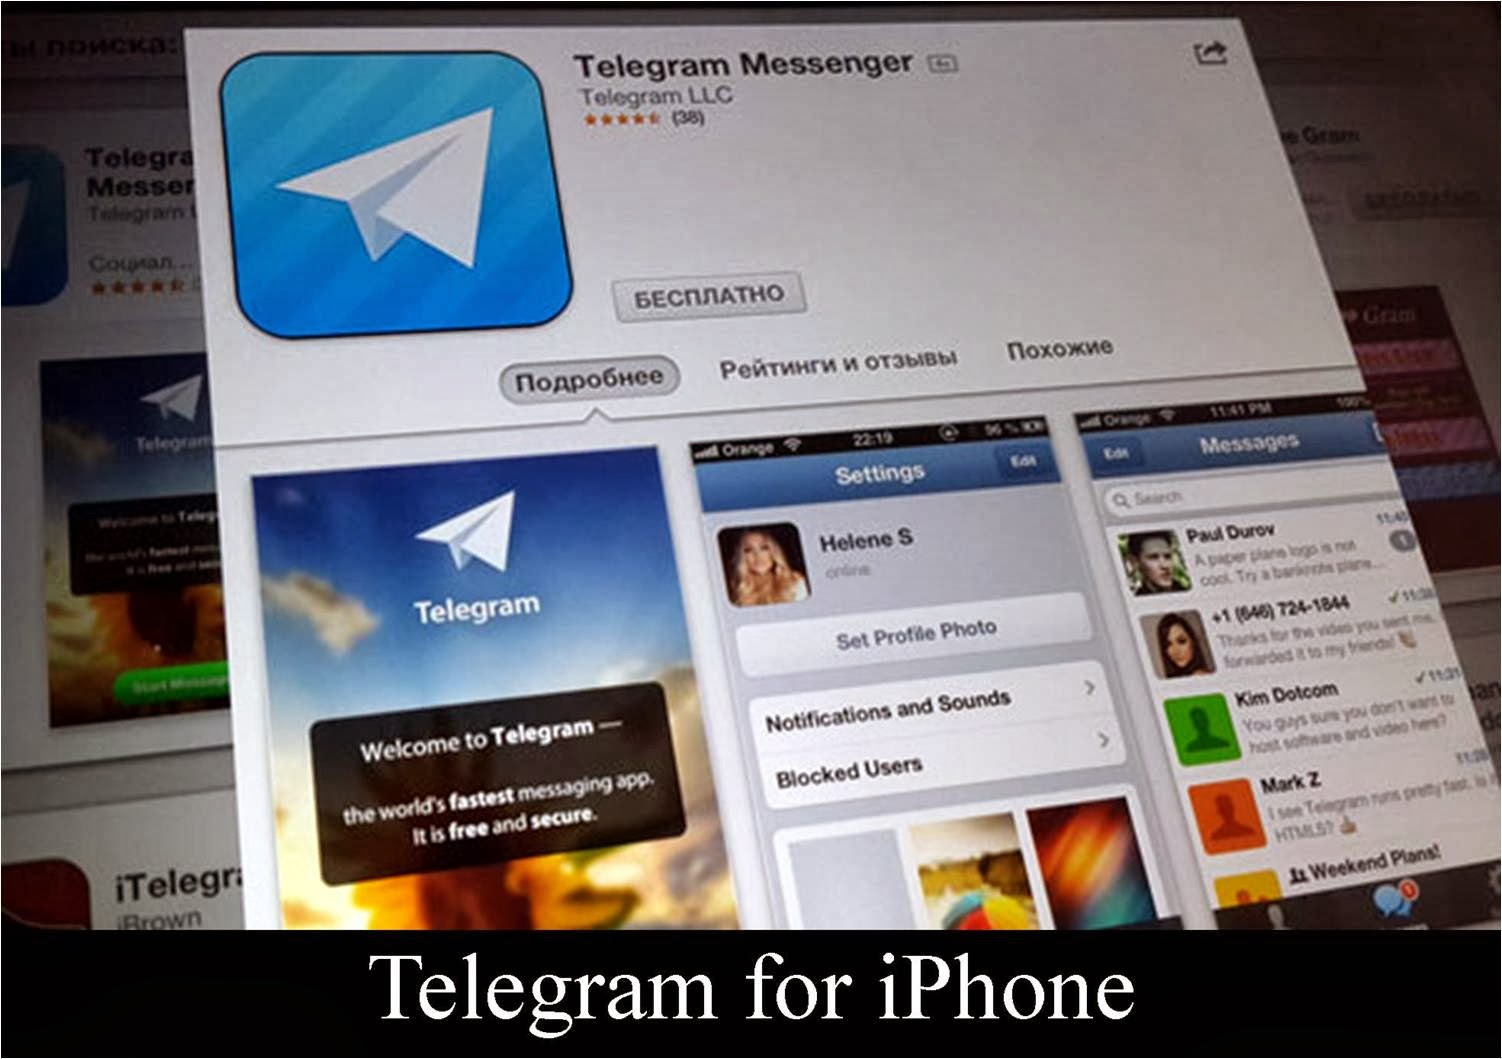 Telegram App on an iphone